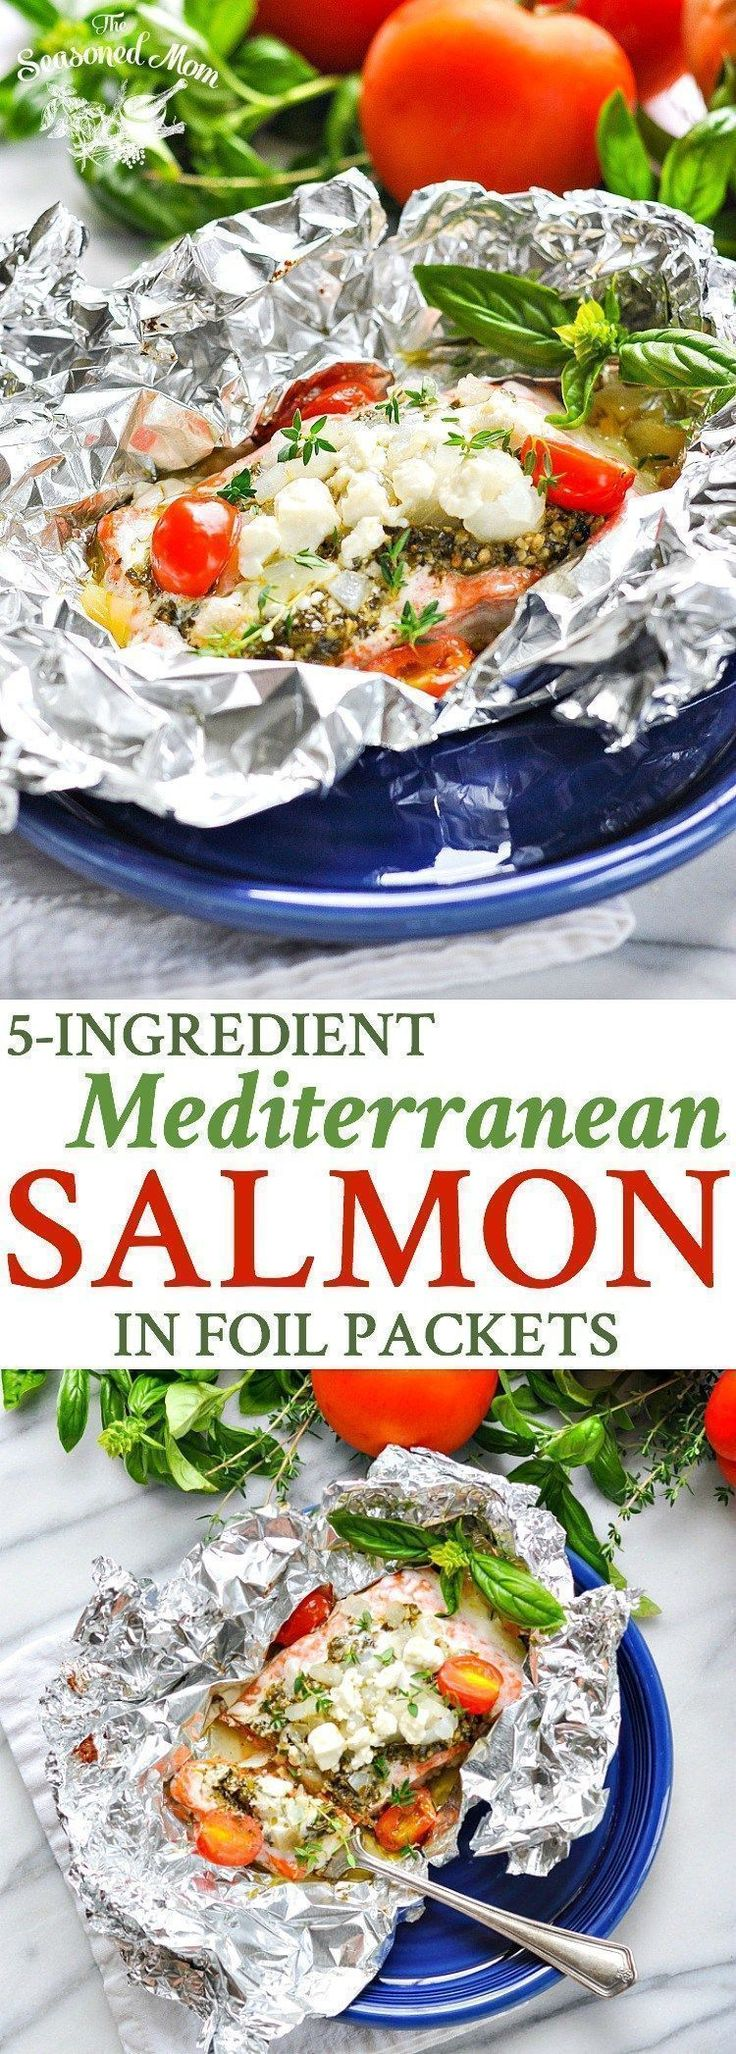 5-Ingredient Mediterranean Salmon in Foil Packets | Seafood Recipes | Easy Dinner Recipes | Dinner Ideas | Healthy 5 Ingredient or Less Recipes | Healthy Recipes | Salmon Recipes Baked | Camping Food | Camping Meals | Gluten Free #seafoodrecipes #campingmealsdinner #campingmealseasy #mediterraneanrecipeshealthy